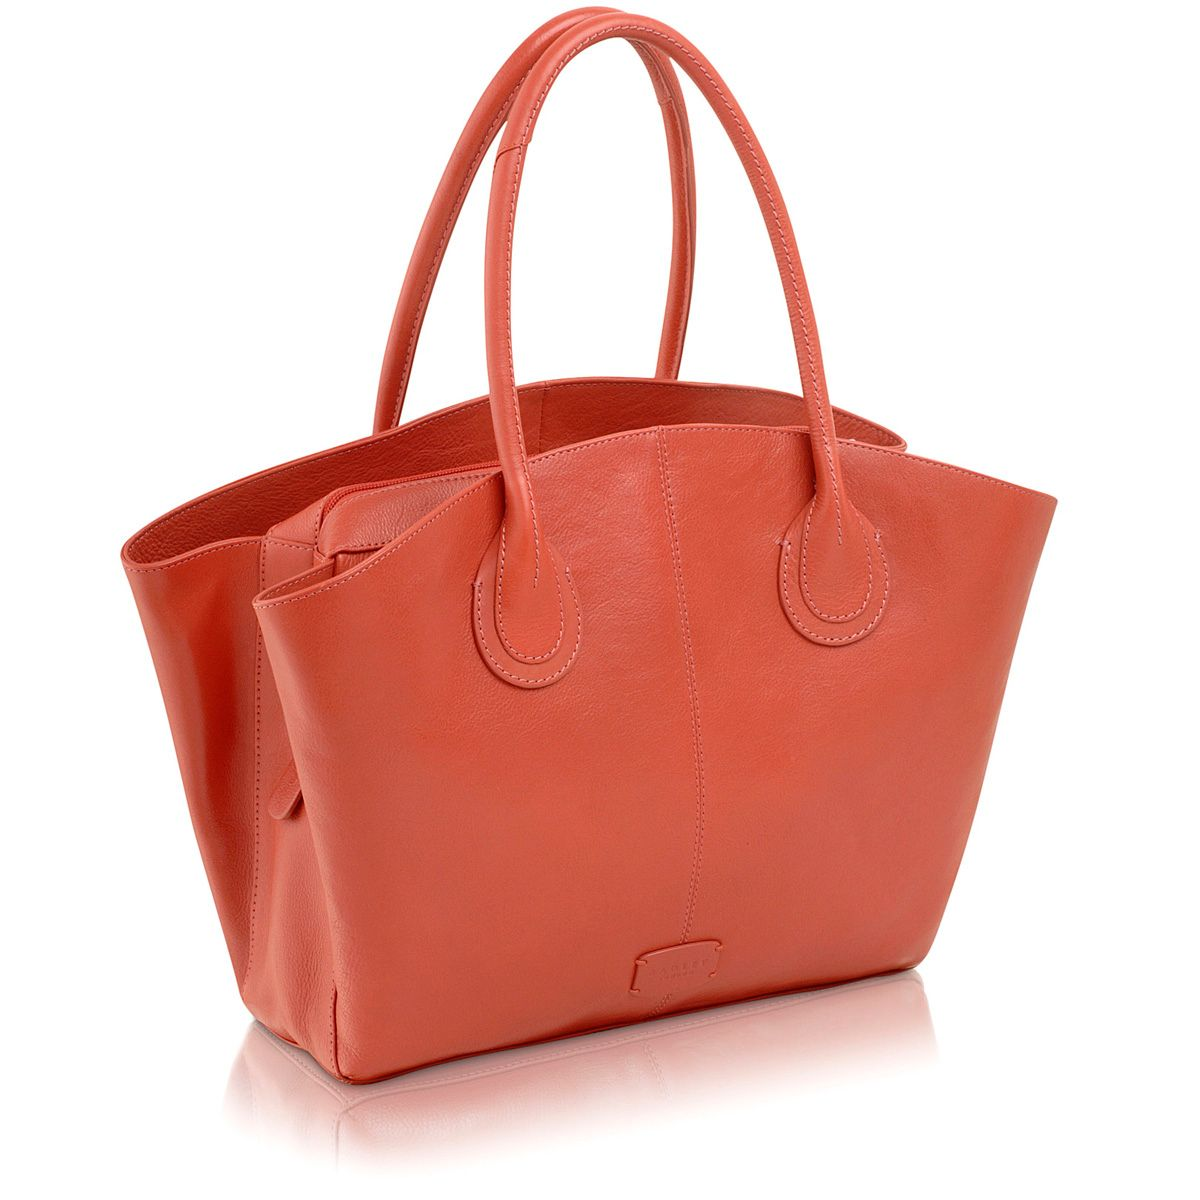 Overton pink large leather tote bag